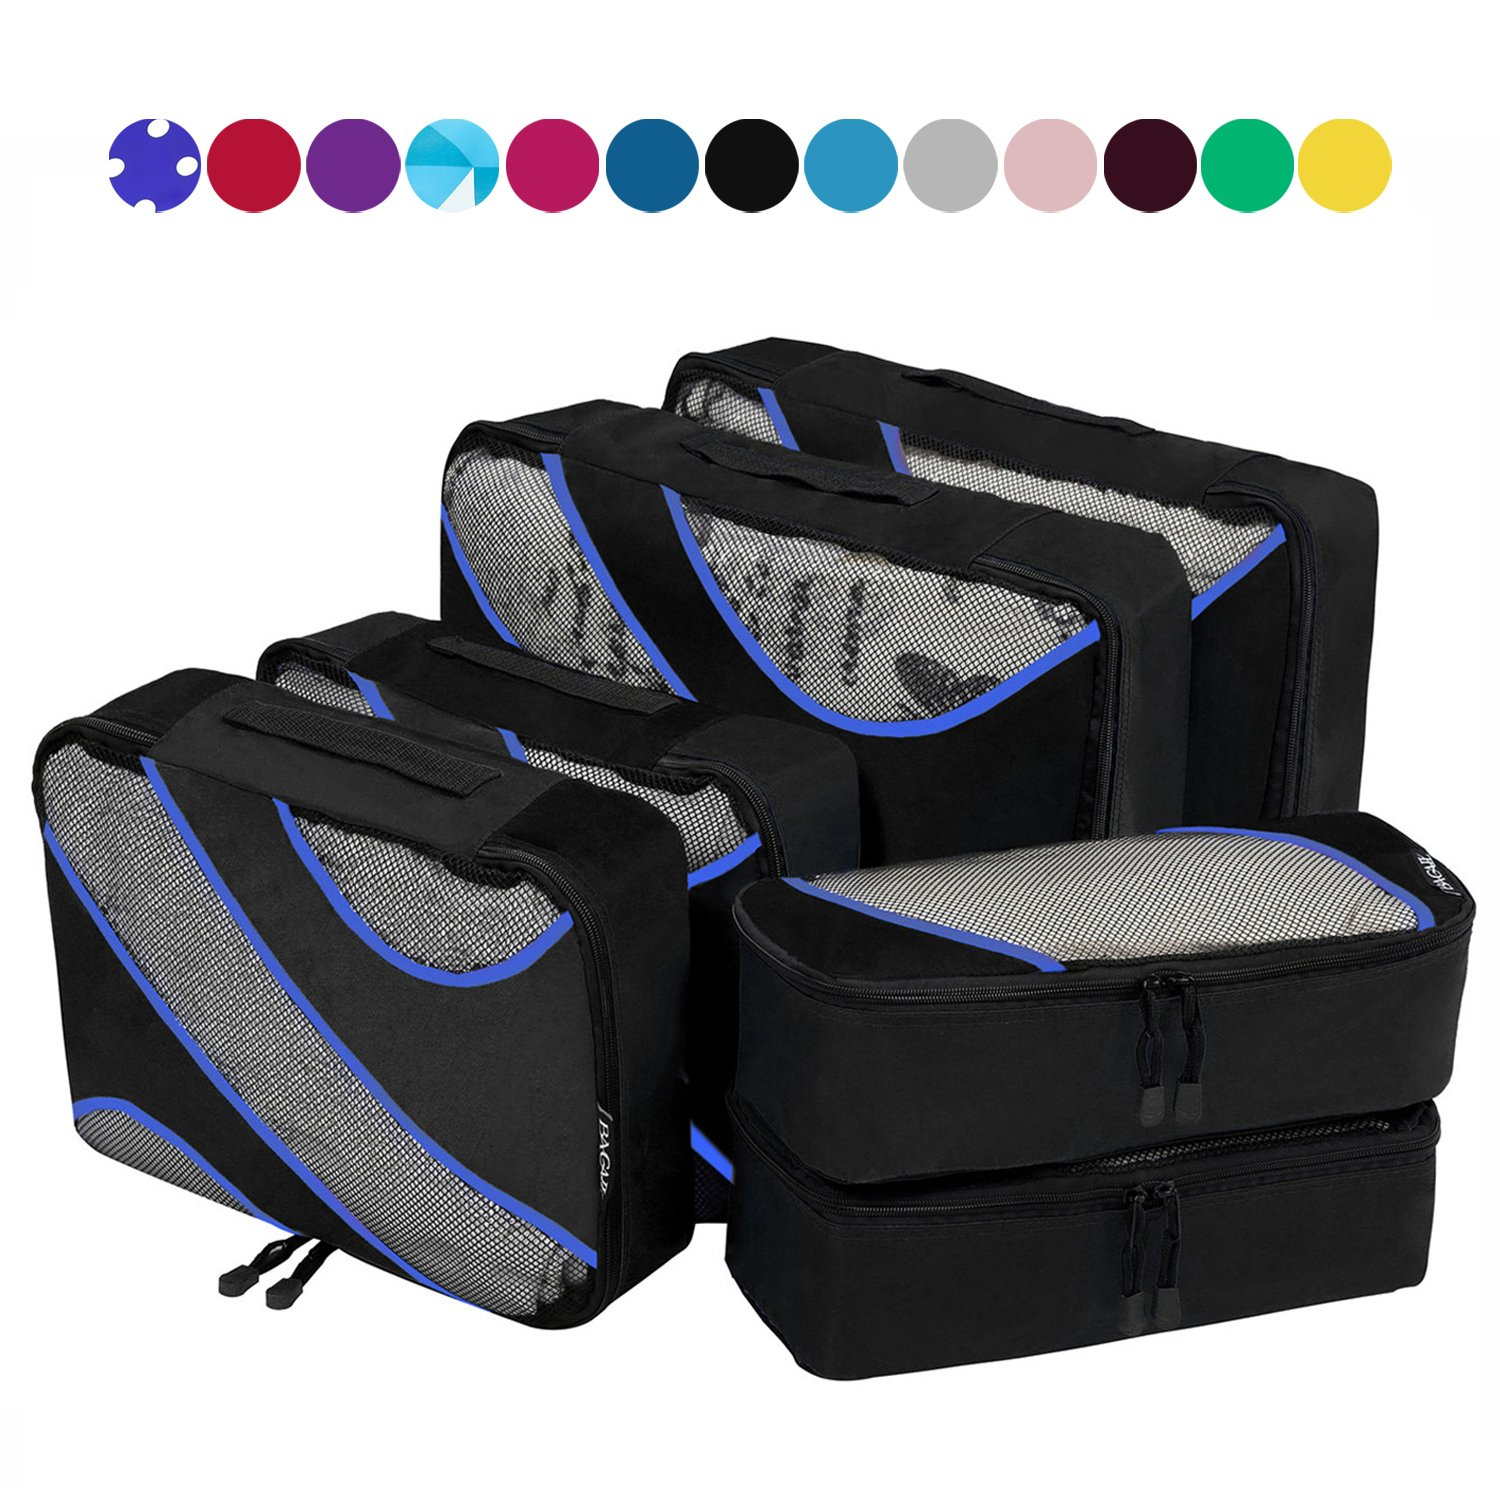 6 Set Packing Cubes,3 Various Sizes Travel Luggage Packing Organizers Black by BAGAIL